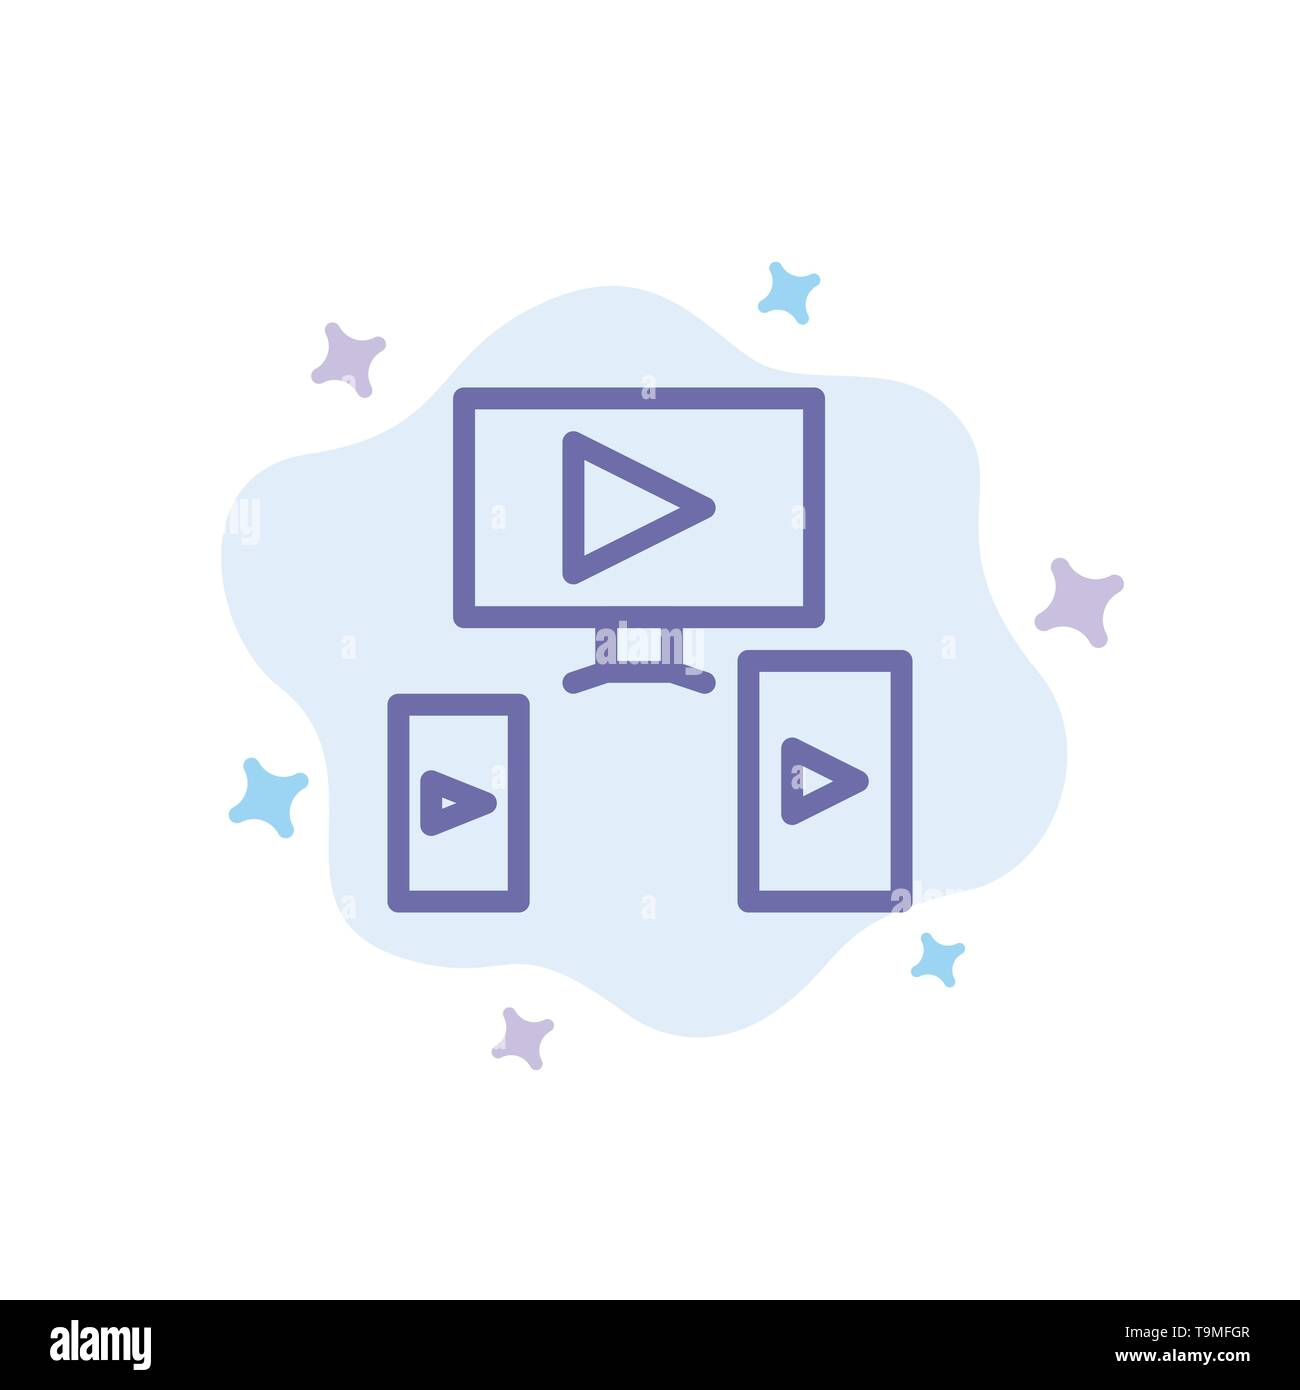 Computer, Video, Design Blue Icon on Abstract Cloud Background - Stock Image